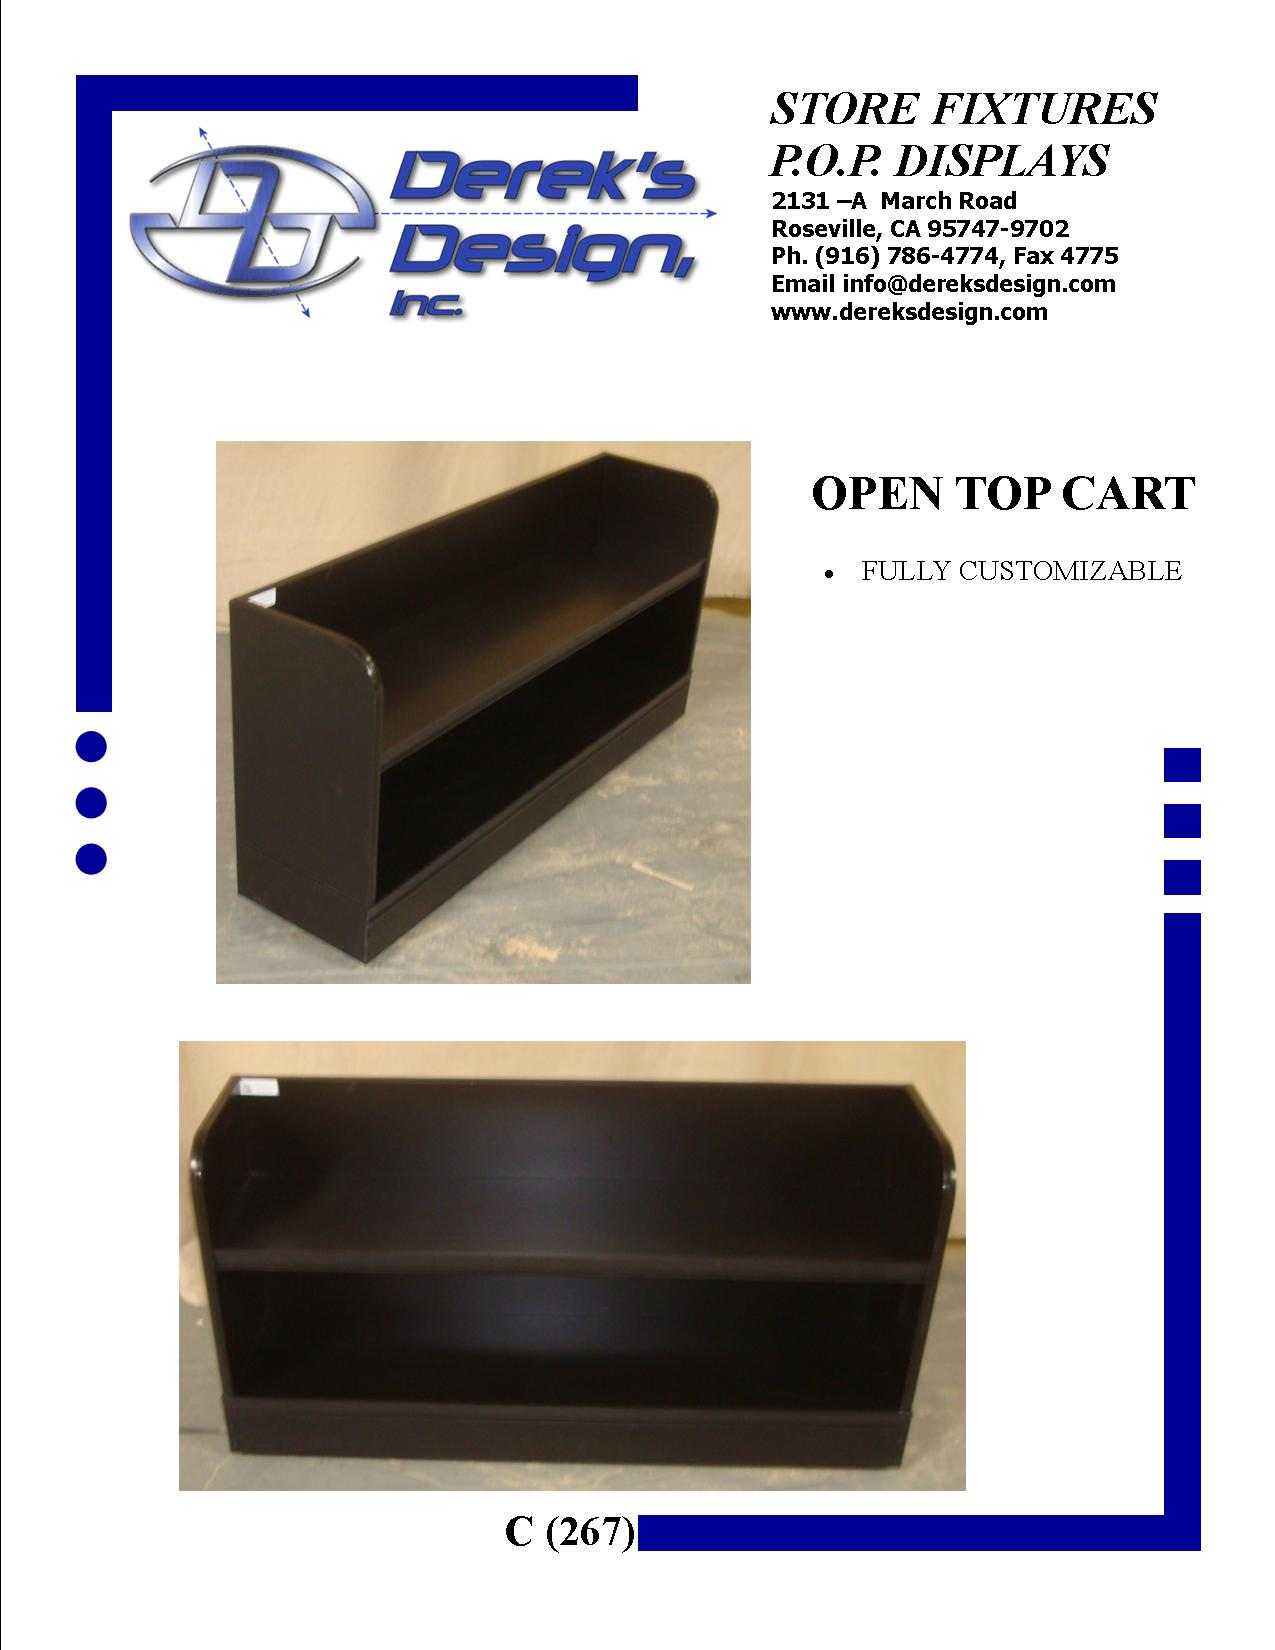 "<A HREF=""MAILTO:ORDERS@DEREKSDESIGN.COM?SUBJECT=C%20(267)&BODY=http://www.dereksdesign.com/gallery/carts-bunkers/c-267-open-top/"">CLICK HERE FOR INQUIRY </A>"